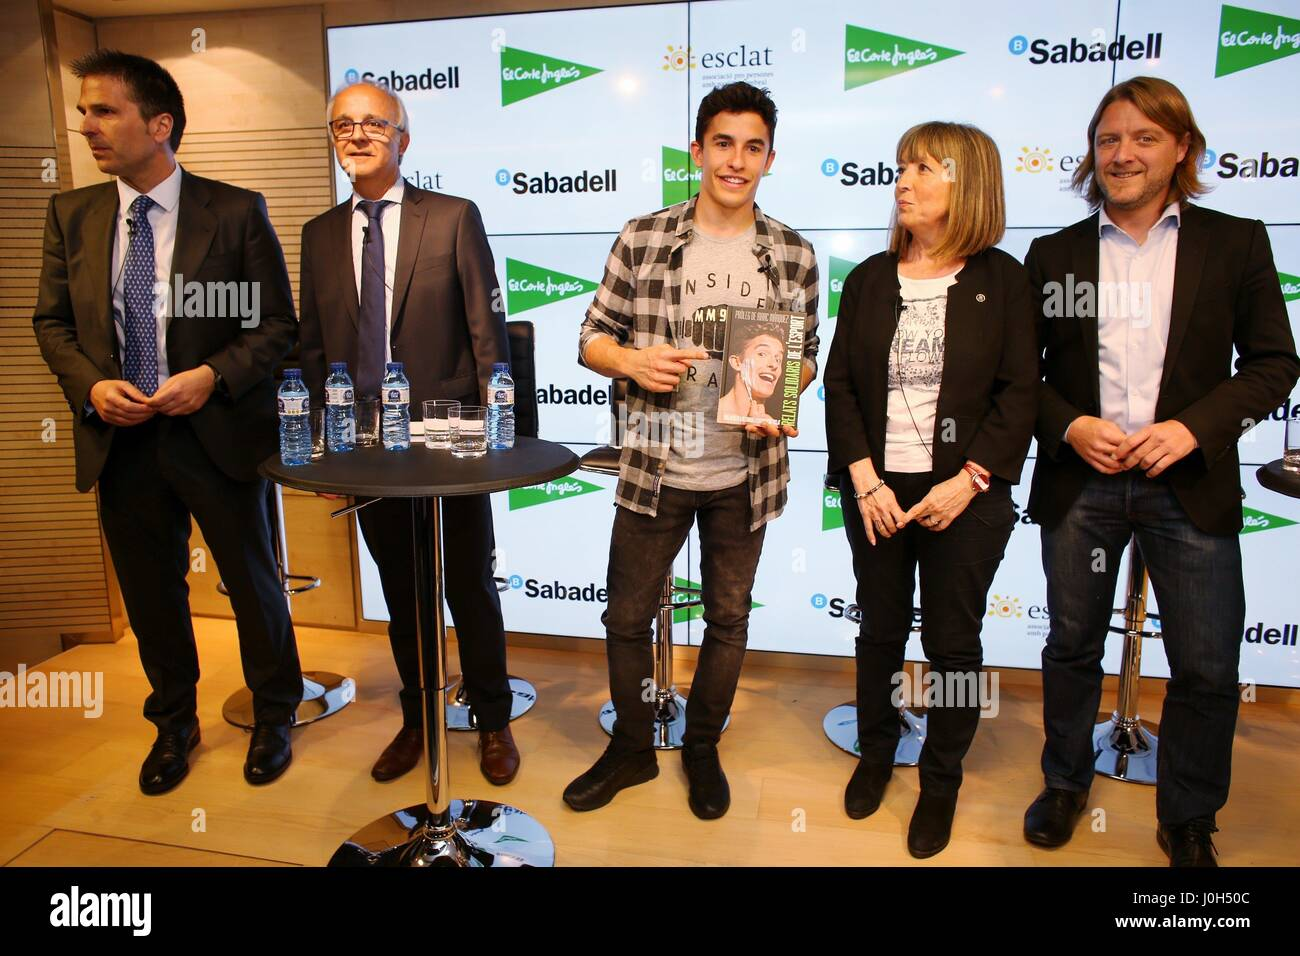 Barcelona, Spain. 13th Apr, 2017. Spanish MotoGP rider Marc Marquez (C) poses with other personalities during the - Stock Image